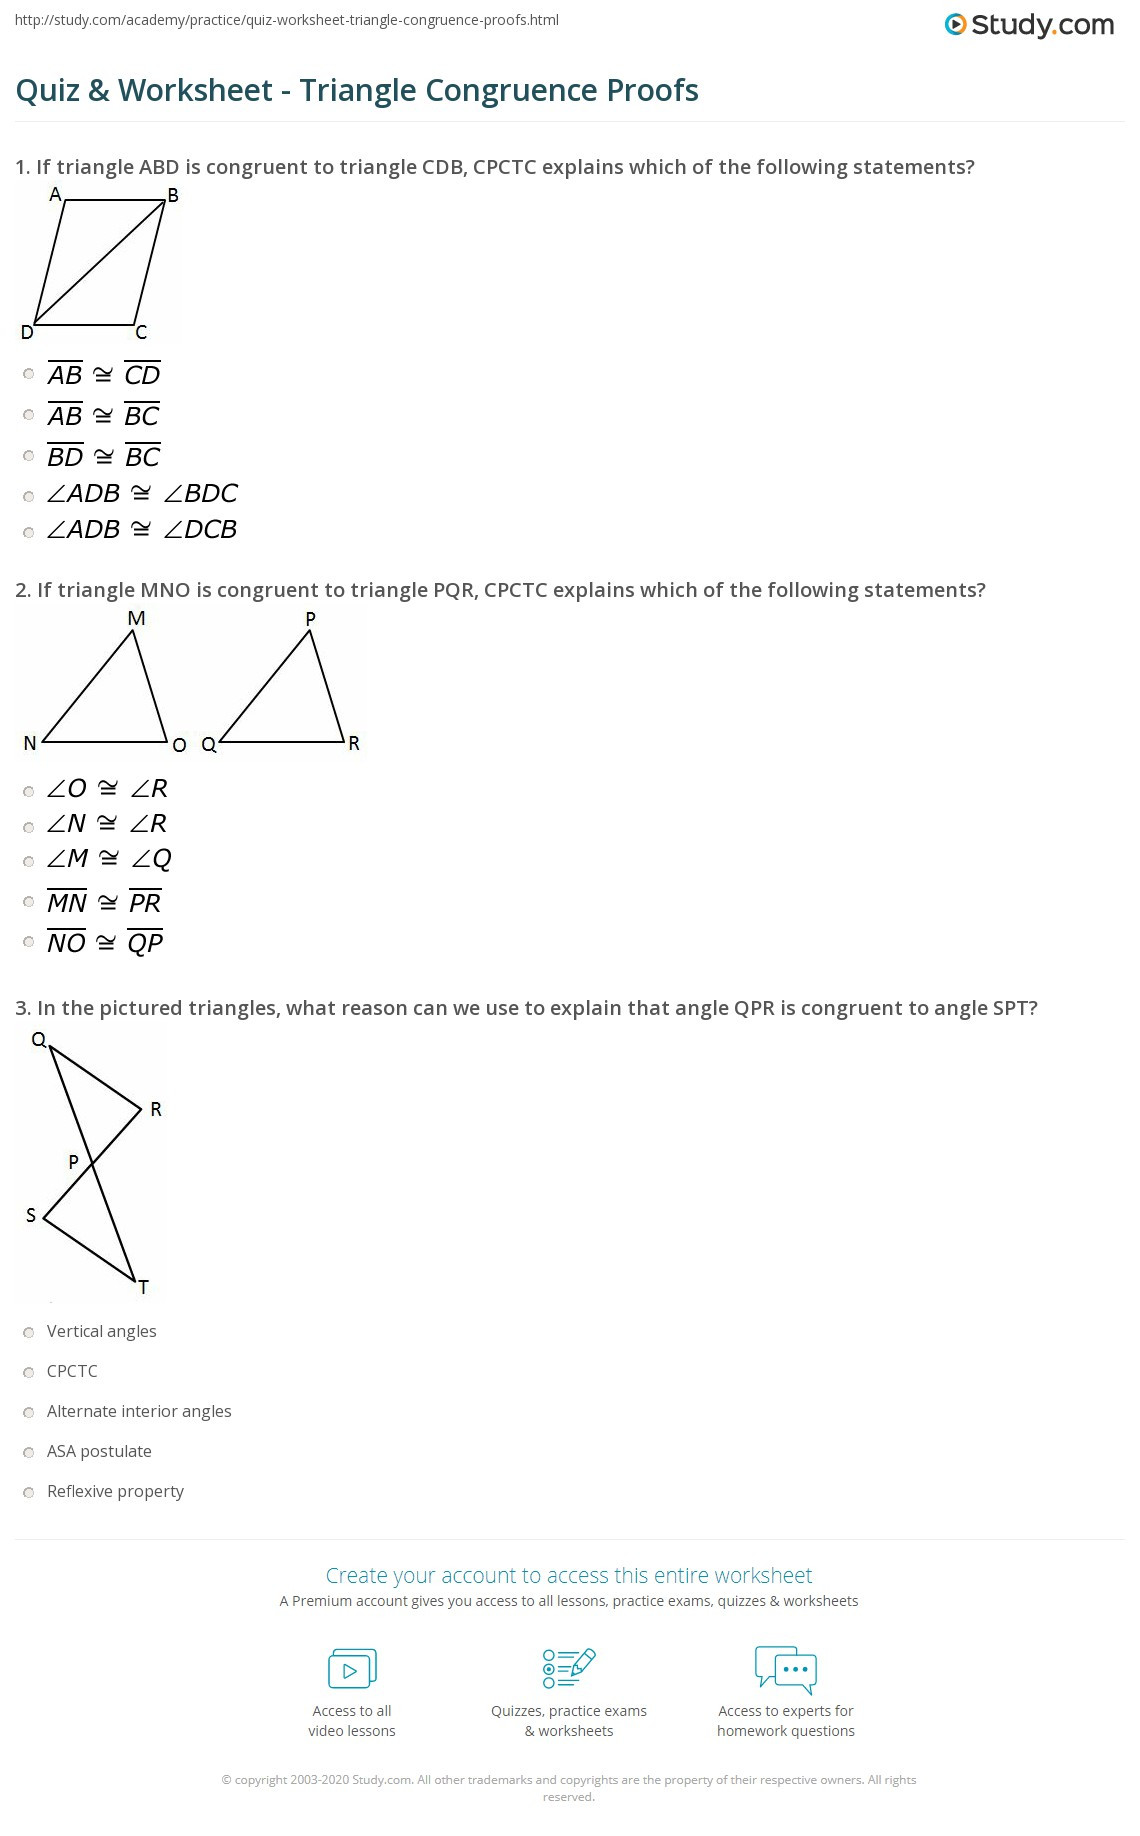 Congruent Triangles Worksheet with Answers Quiz & Worksheet Triangle Congruence Proofs